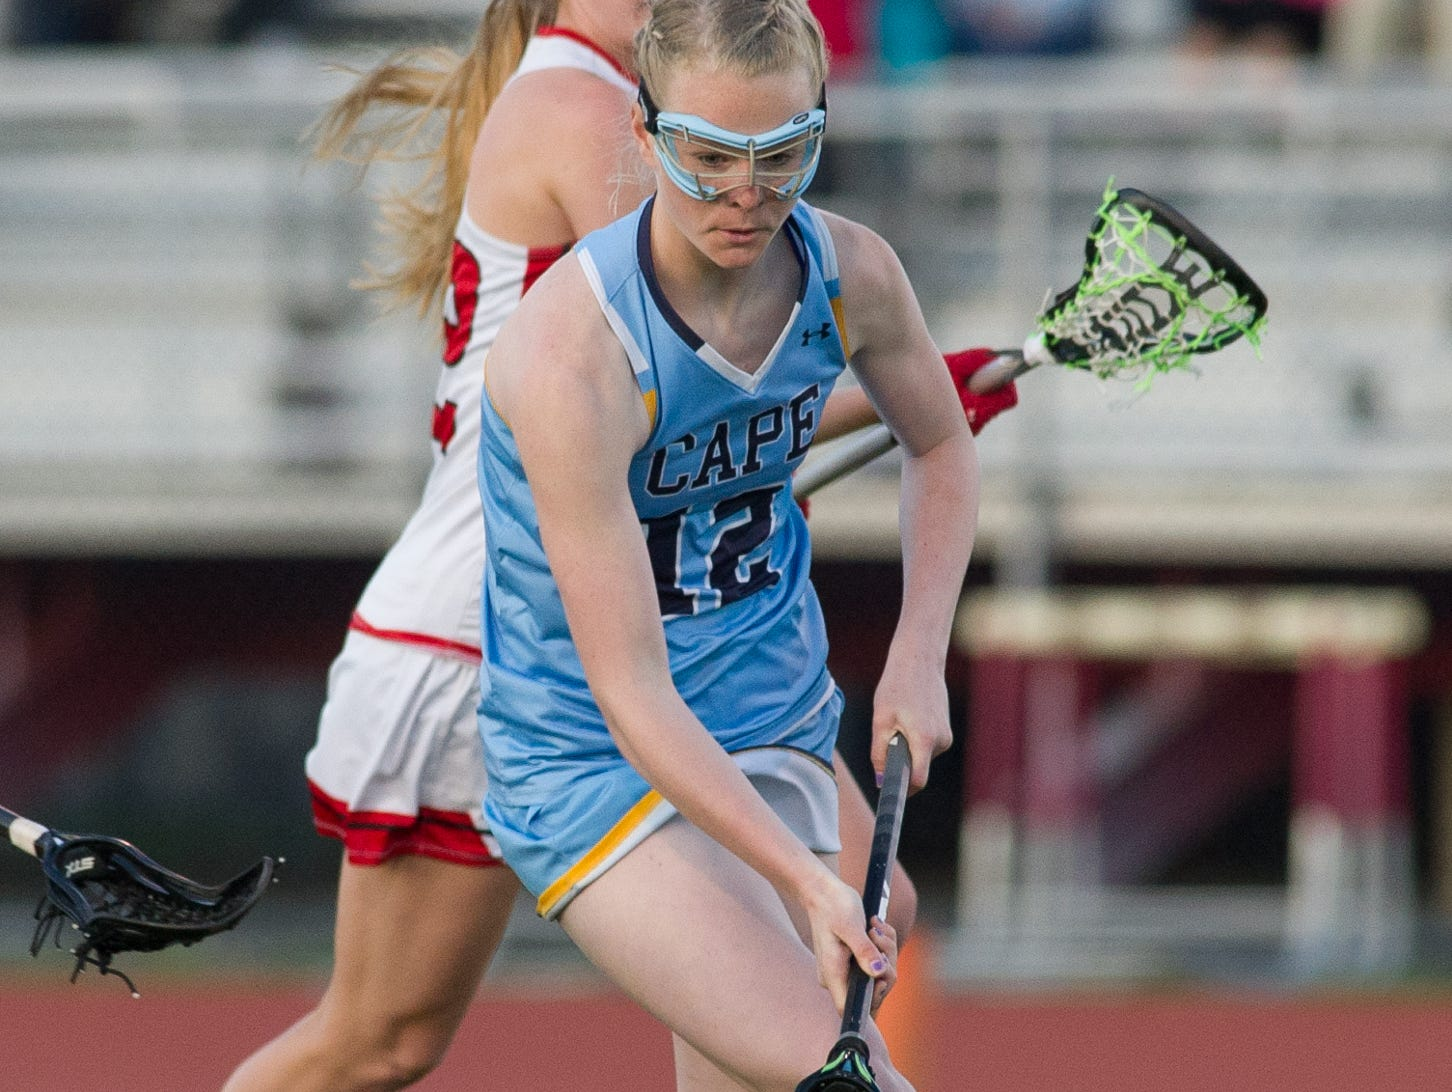 Cape Henlopen's Victoria Lockwood (12) scoops up a loose ball in their 12-10 win over Polytech.